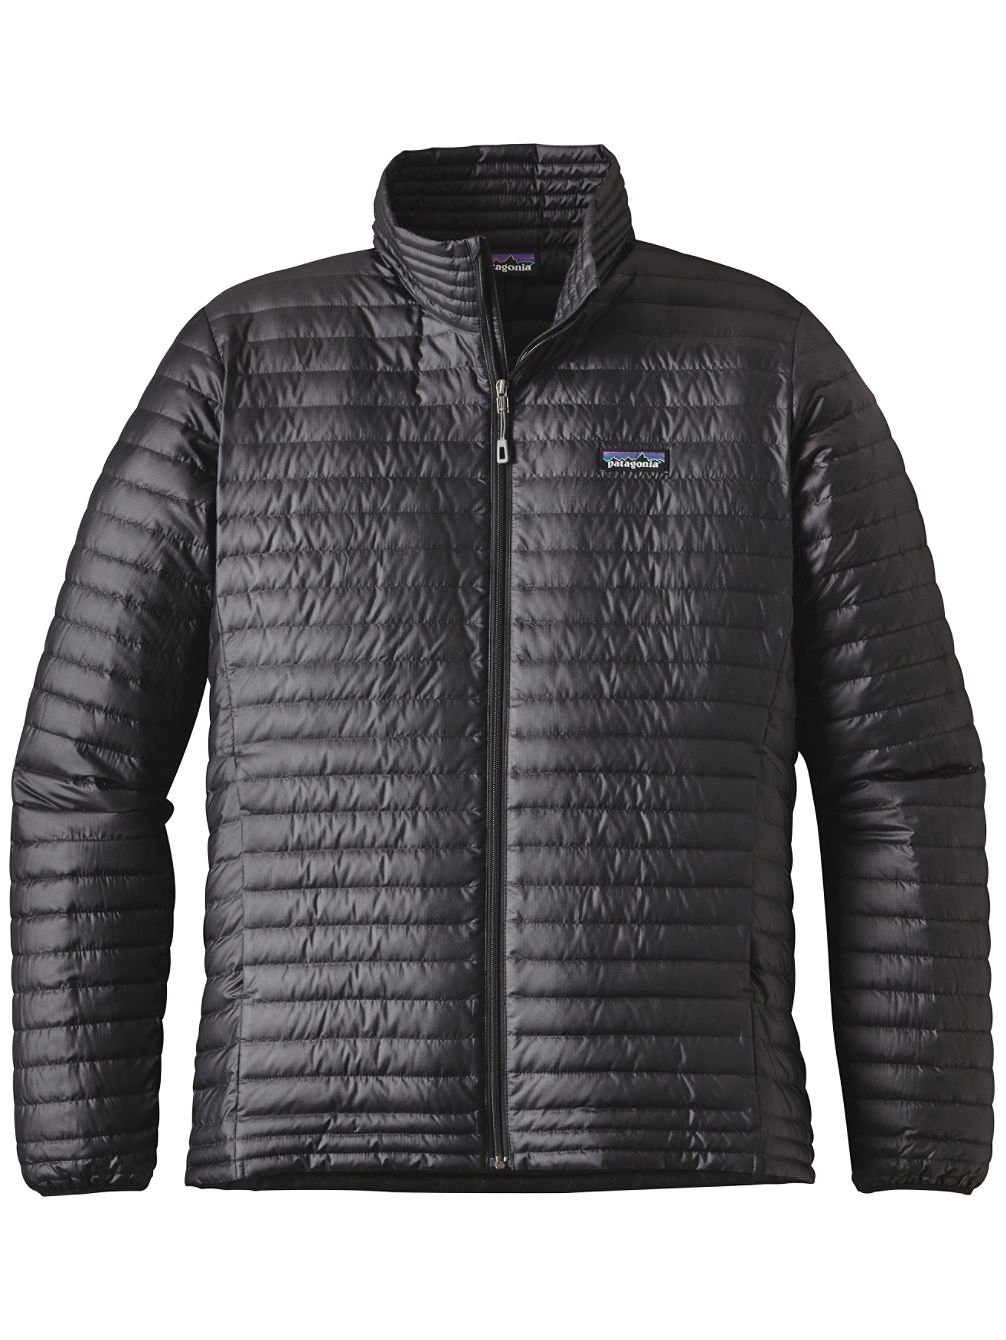 Buy patagonia down shirt fleece jacket online at blue for Patagonia men s recycled down shirt jacket